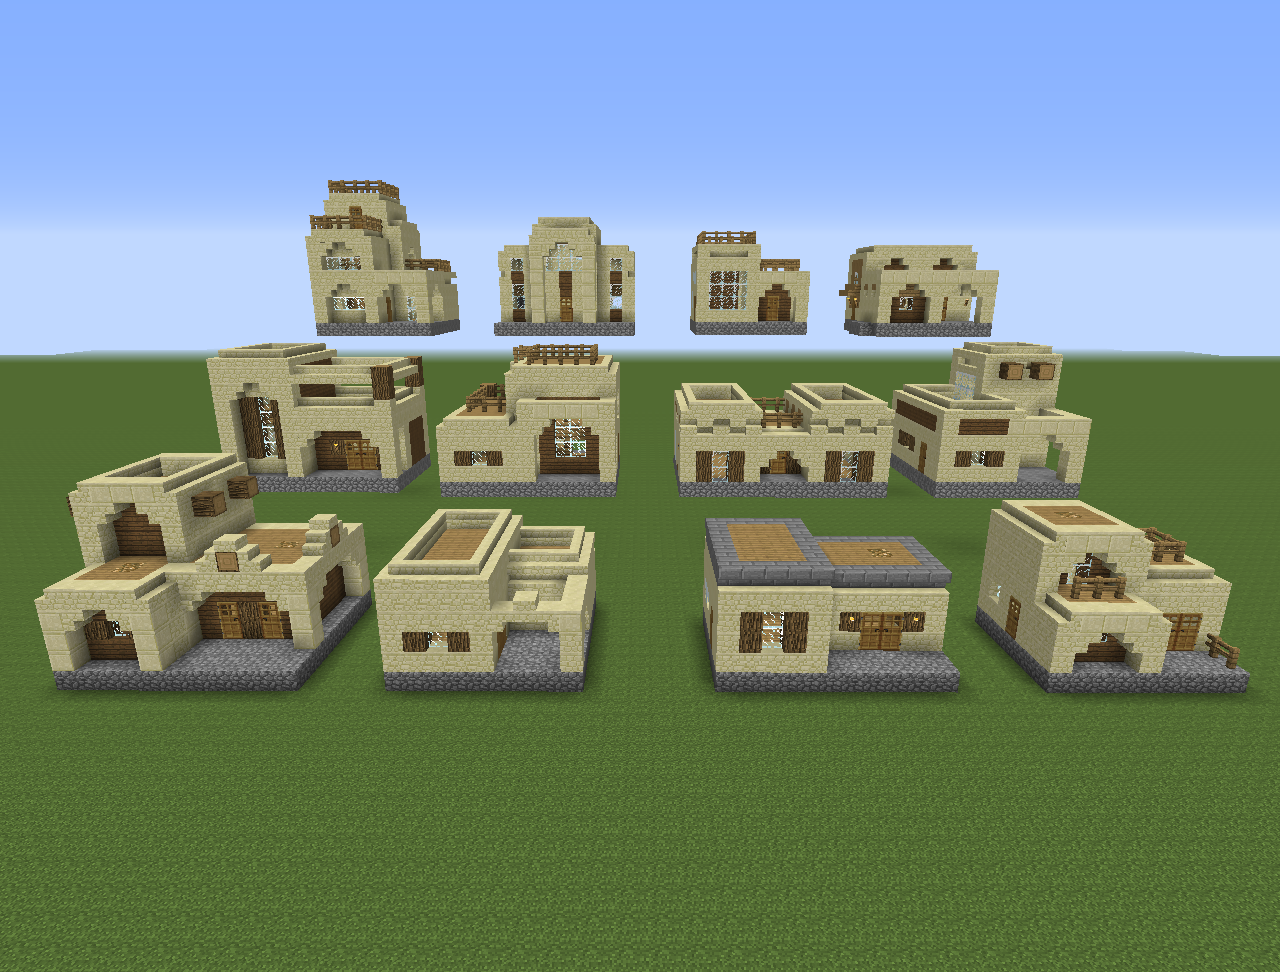 12 House Designs X 2 Building Styles 24 Unique Houses